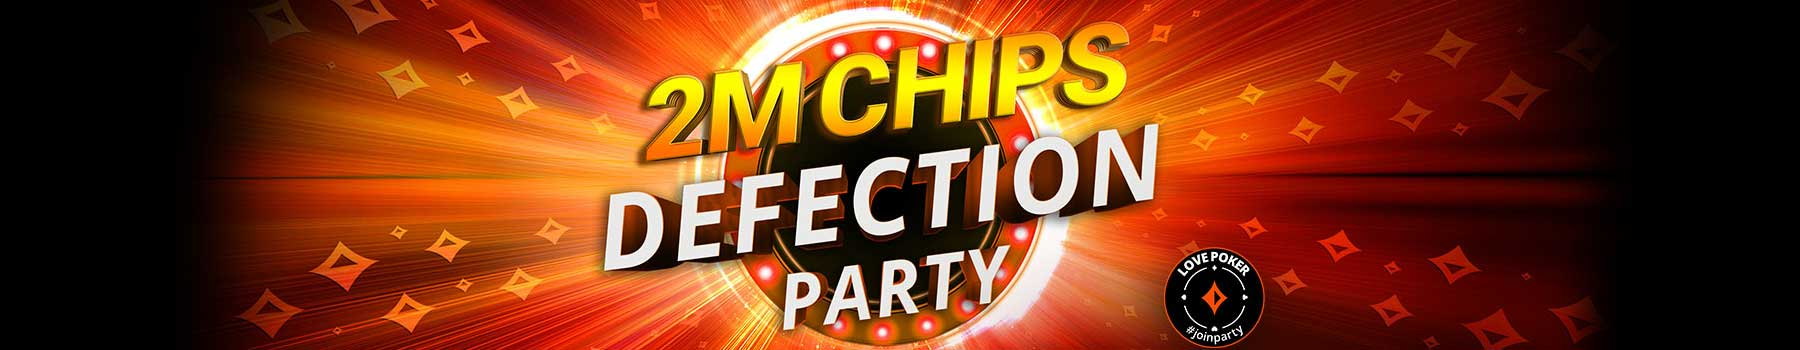 2m-chip-defection-party-phoenix-banner